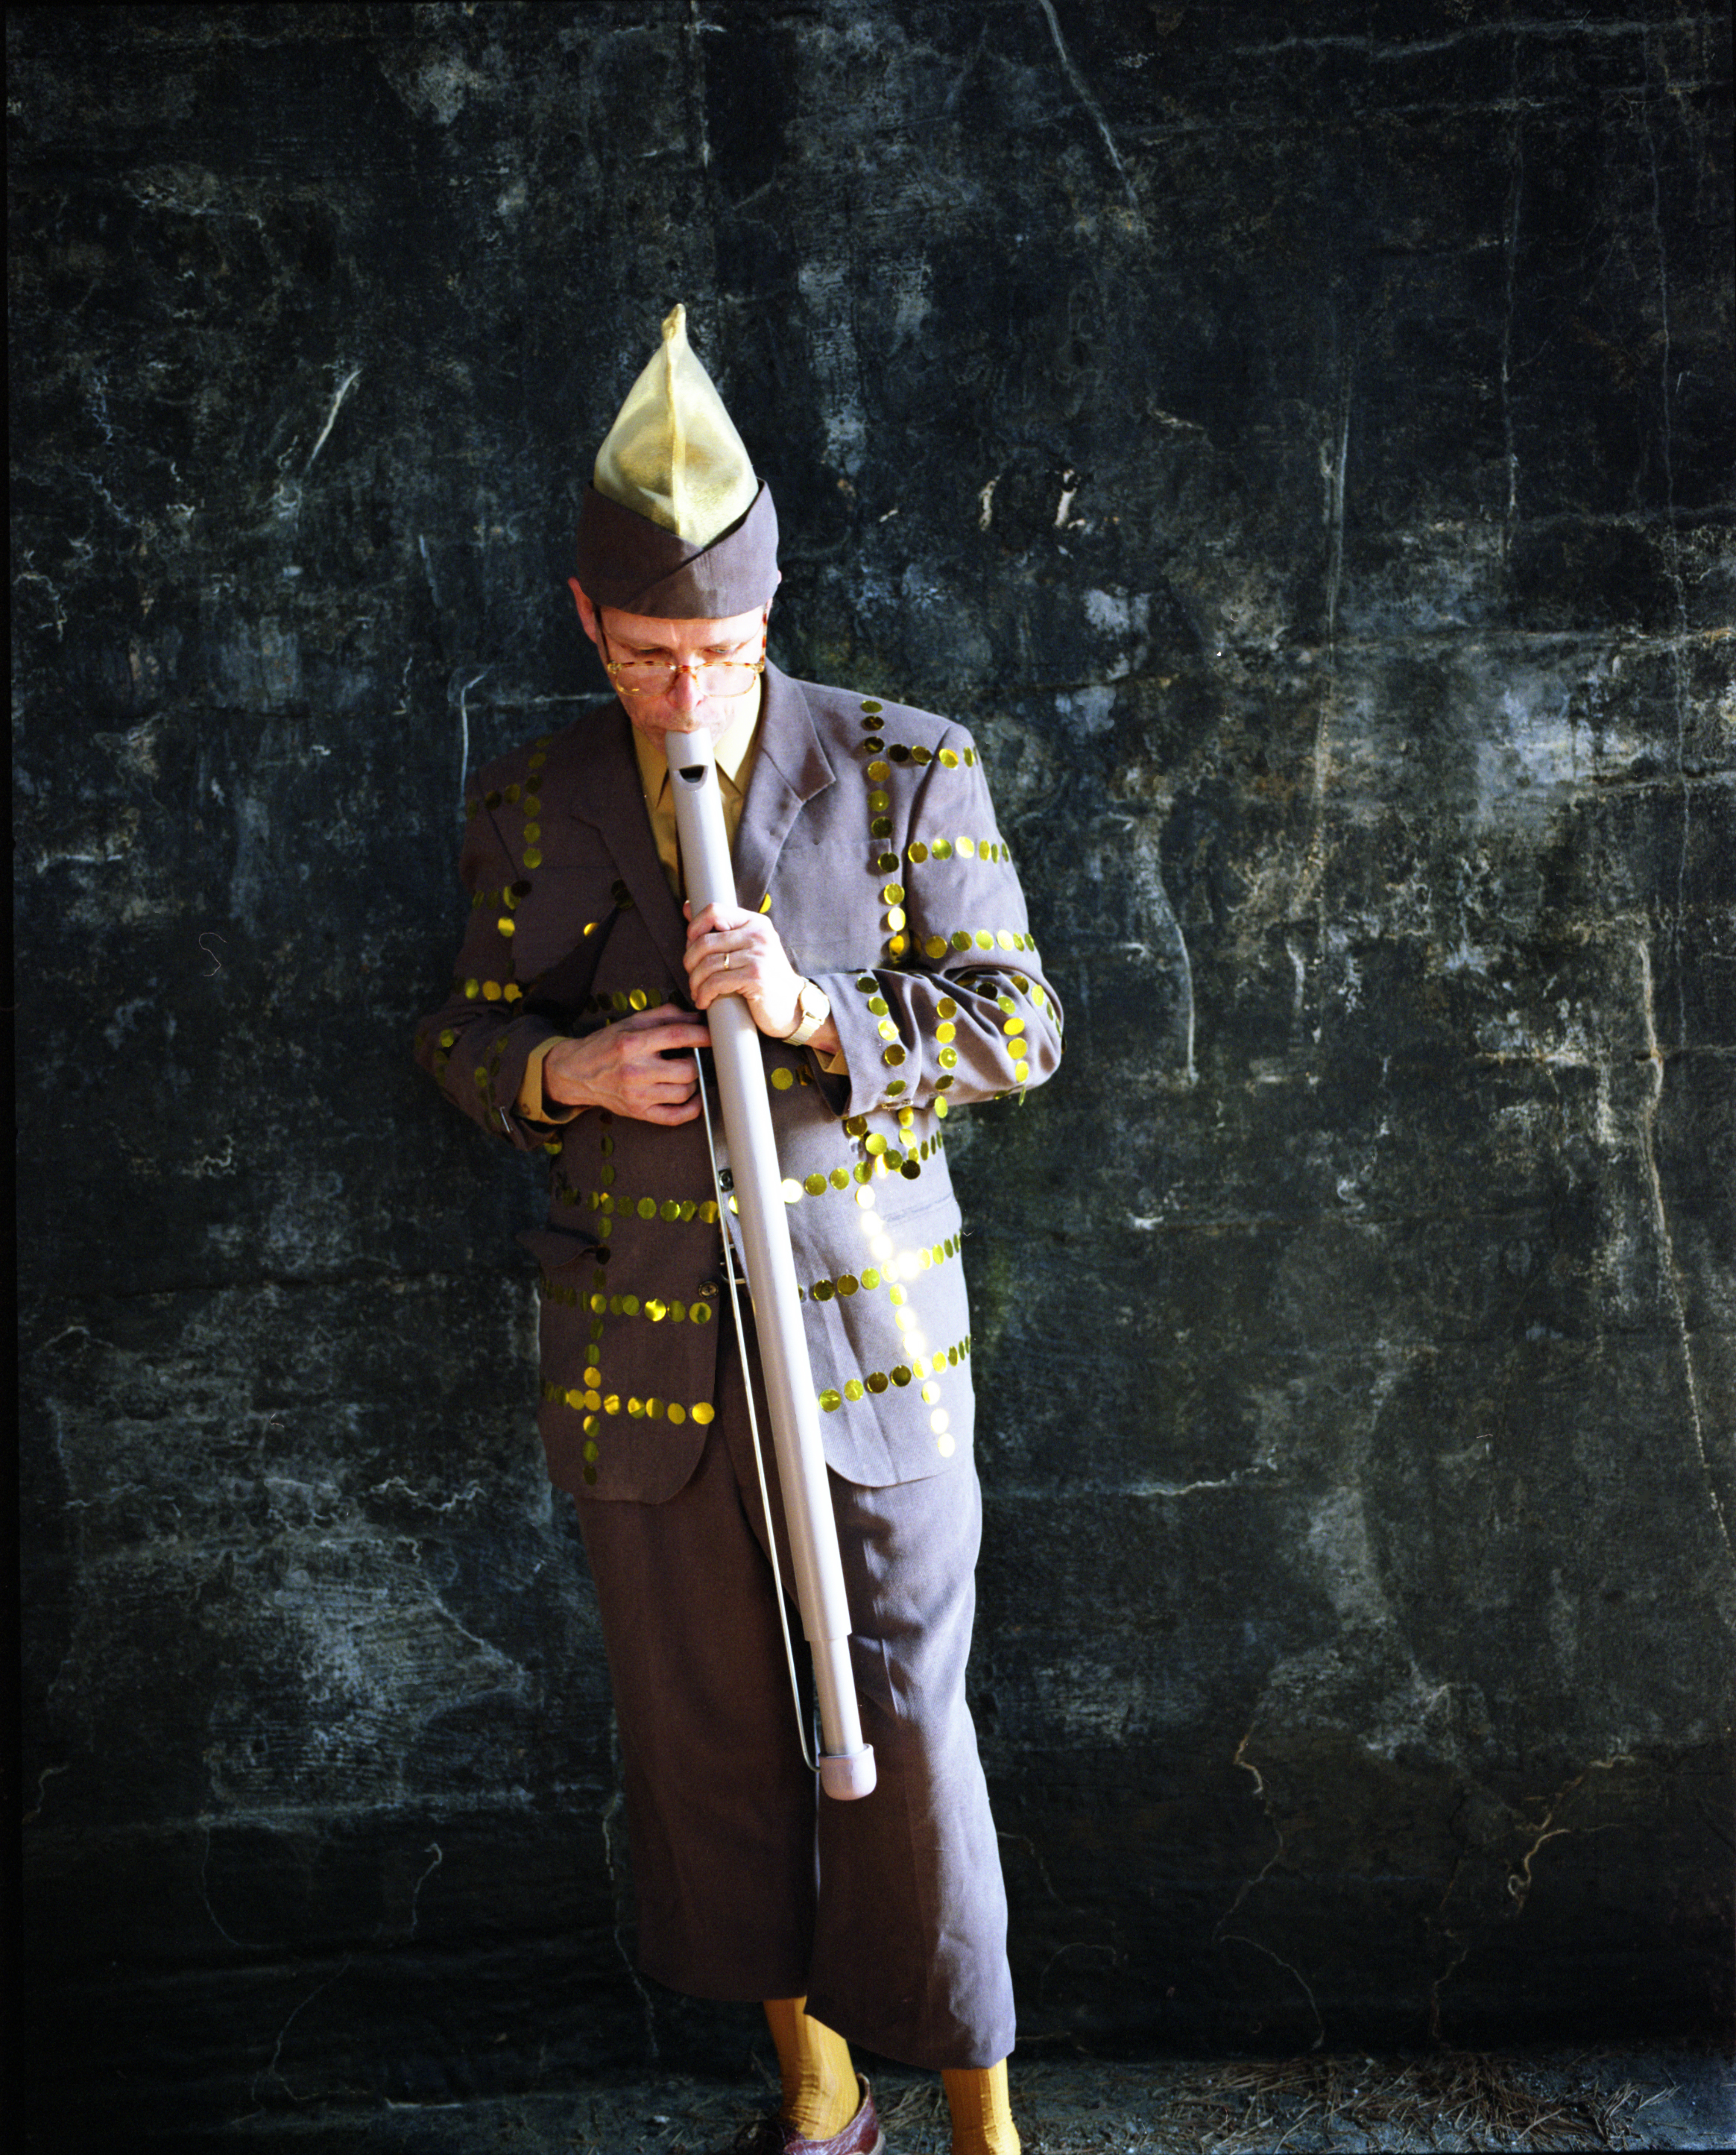 The Music of the Degrees, 2002 color photograph on aluminum edition of 3 150 x 120 cm - 59 x 47 1/4 inches